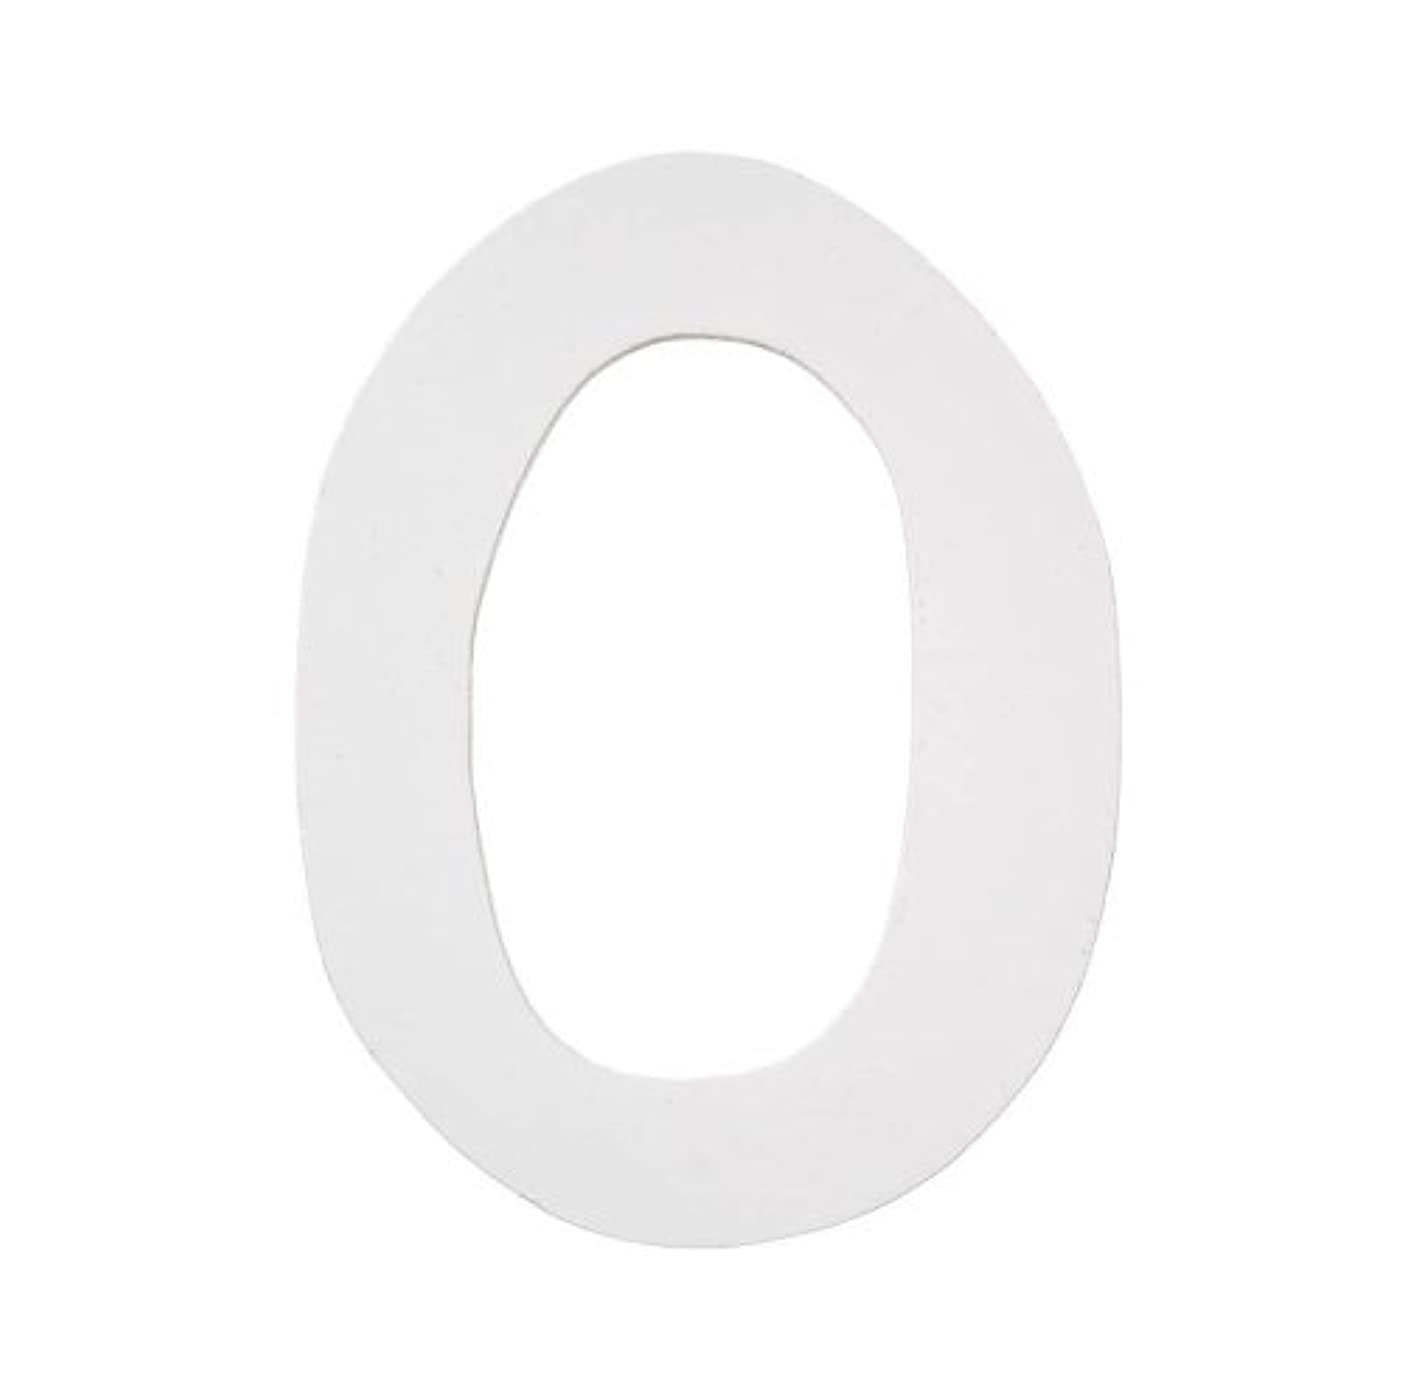 Darice 9185-O Wood Letters, Dot to Dot O, White, 5-Inch